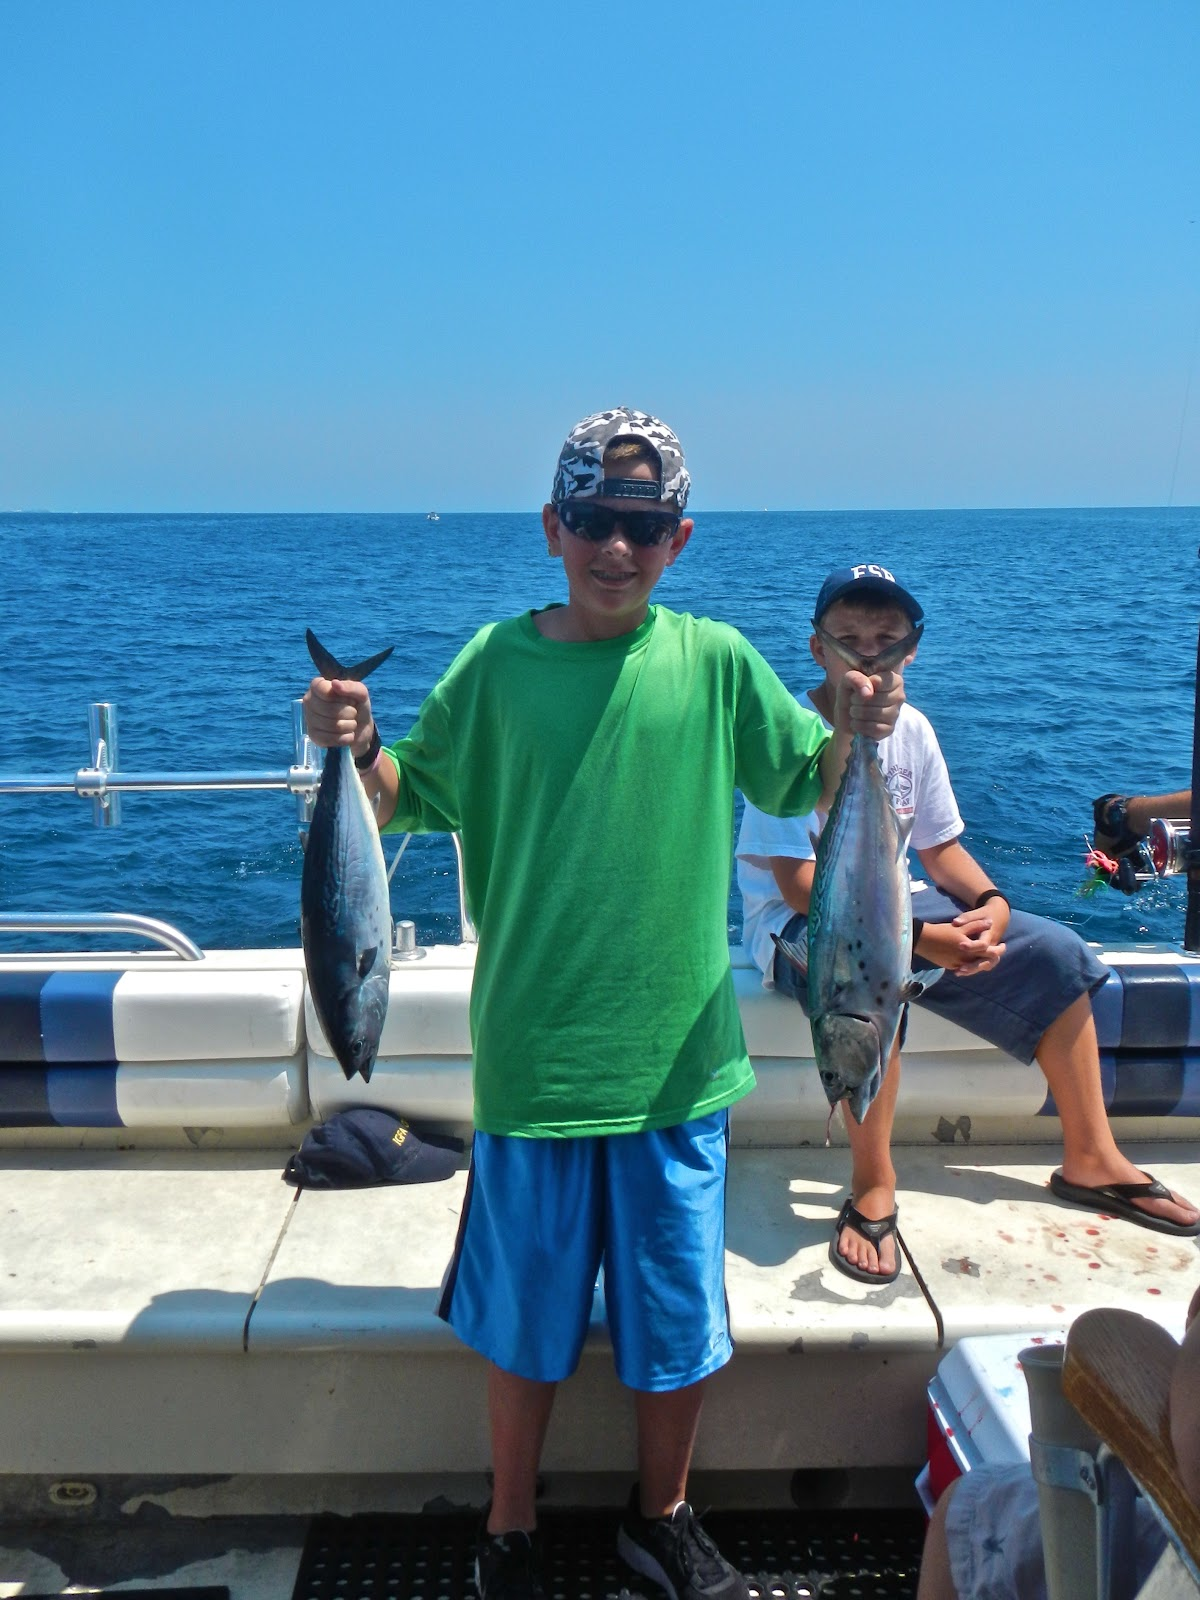 Florida fishing academy offshore fishing summer camp july for Fishing summer camp